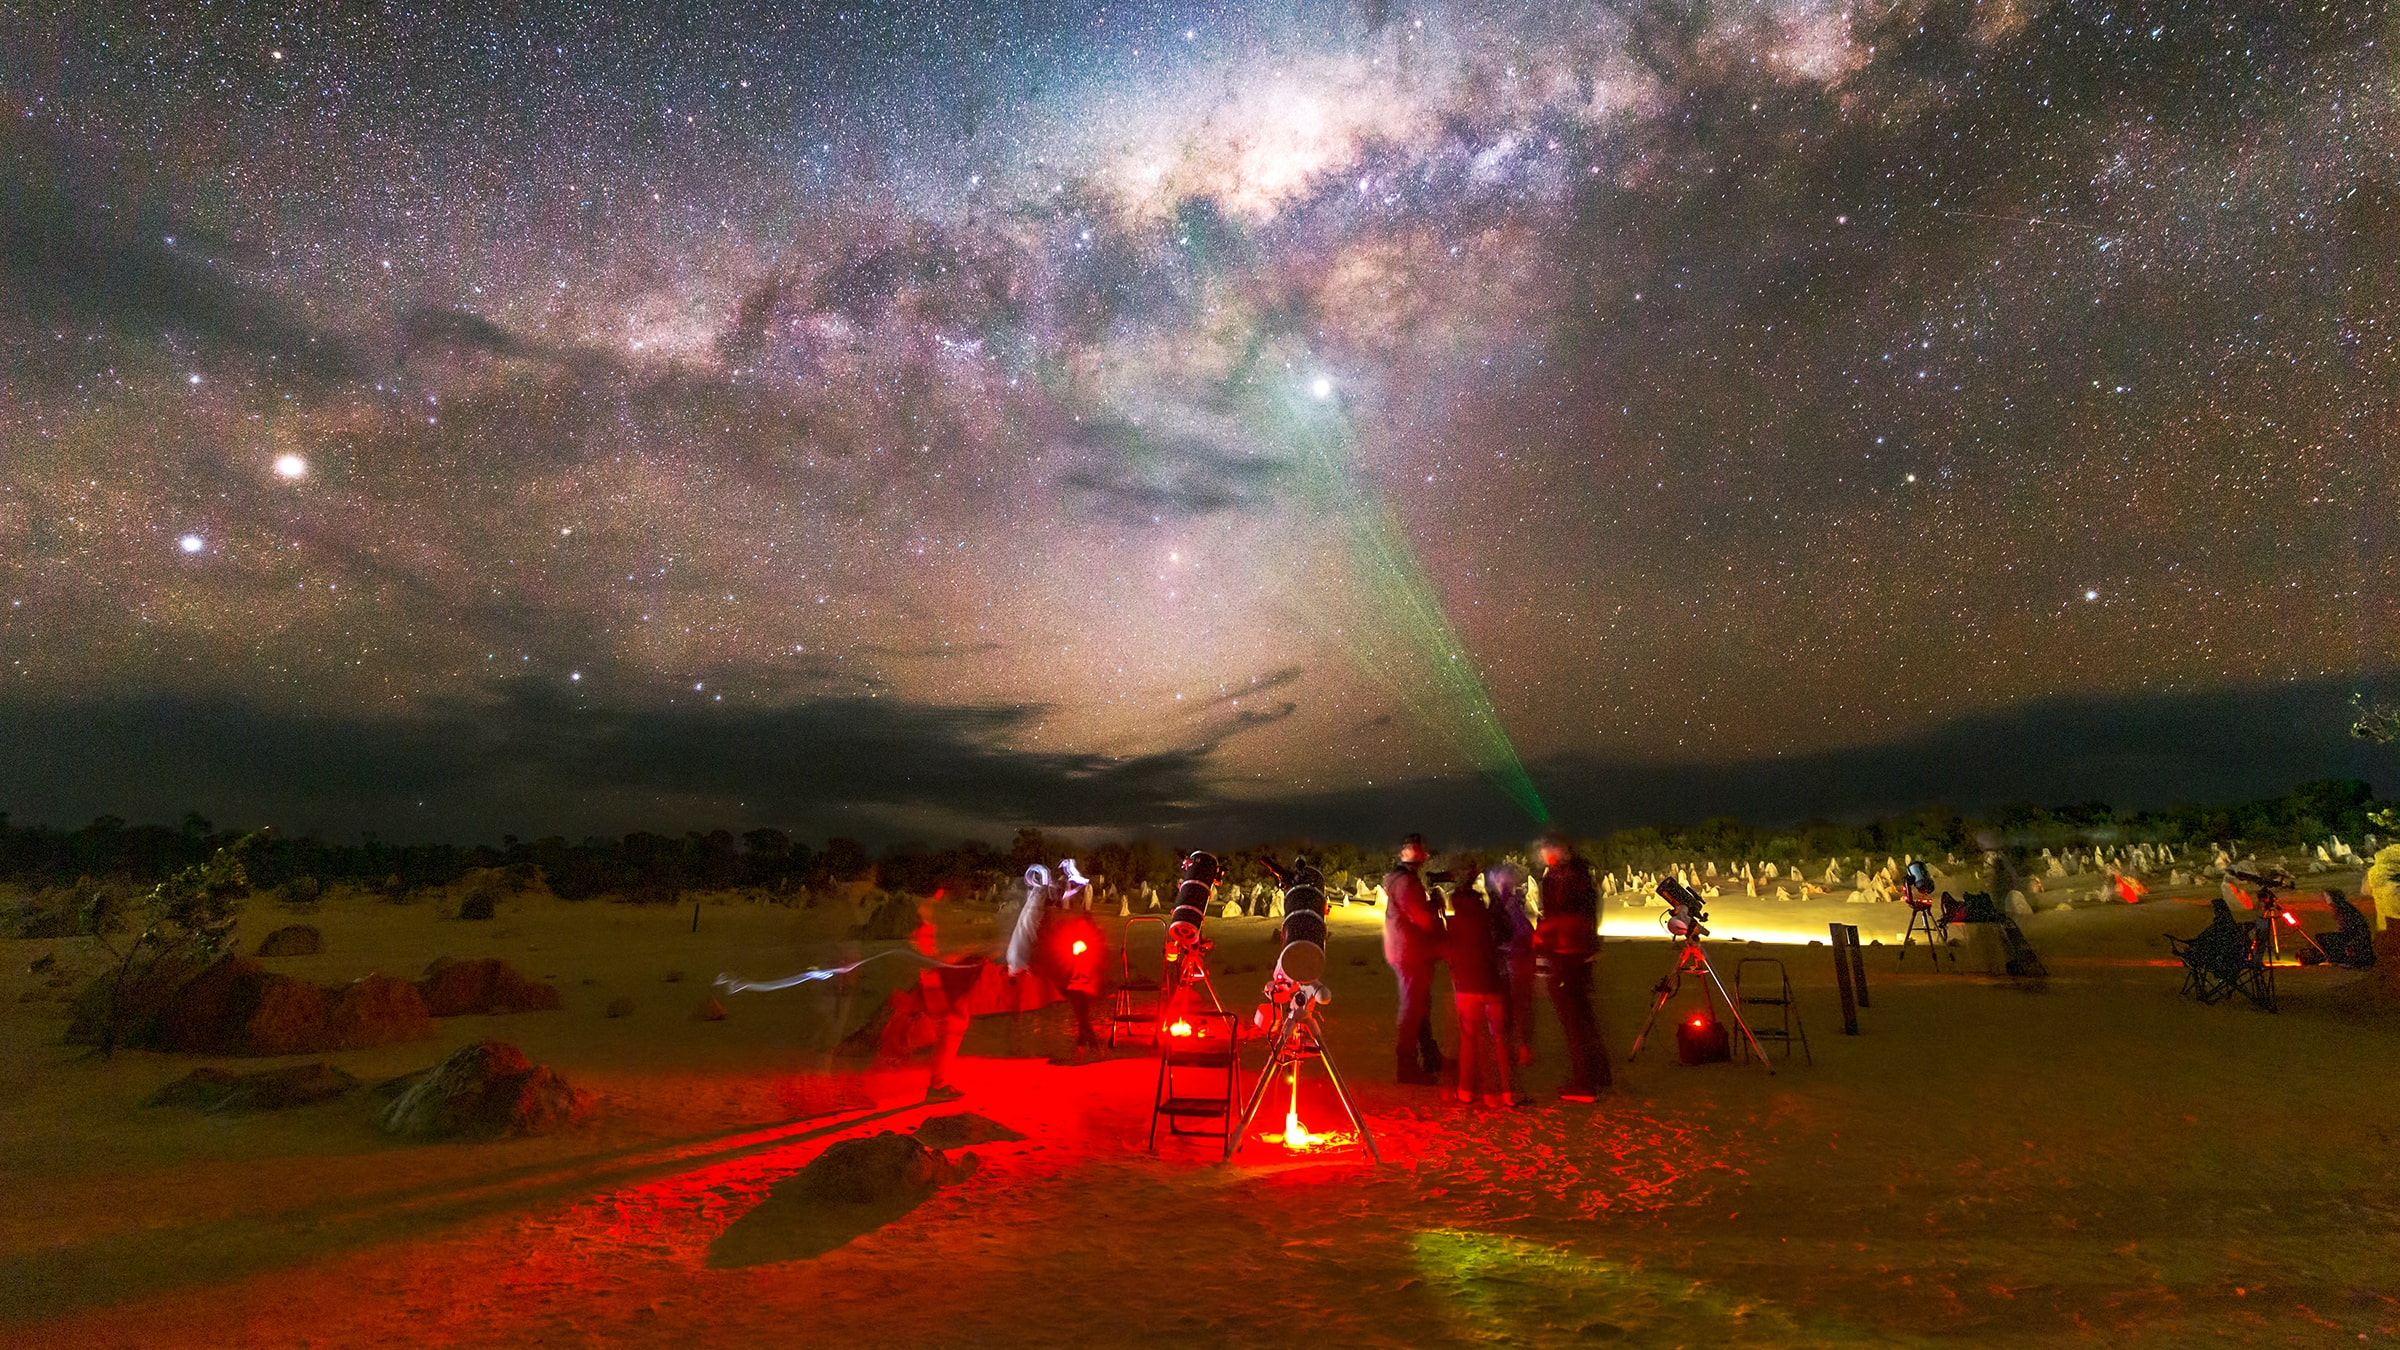 10 Great Places to take your New Telescope